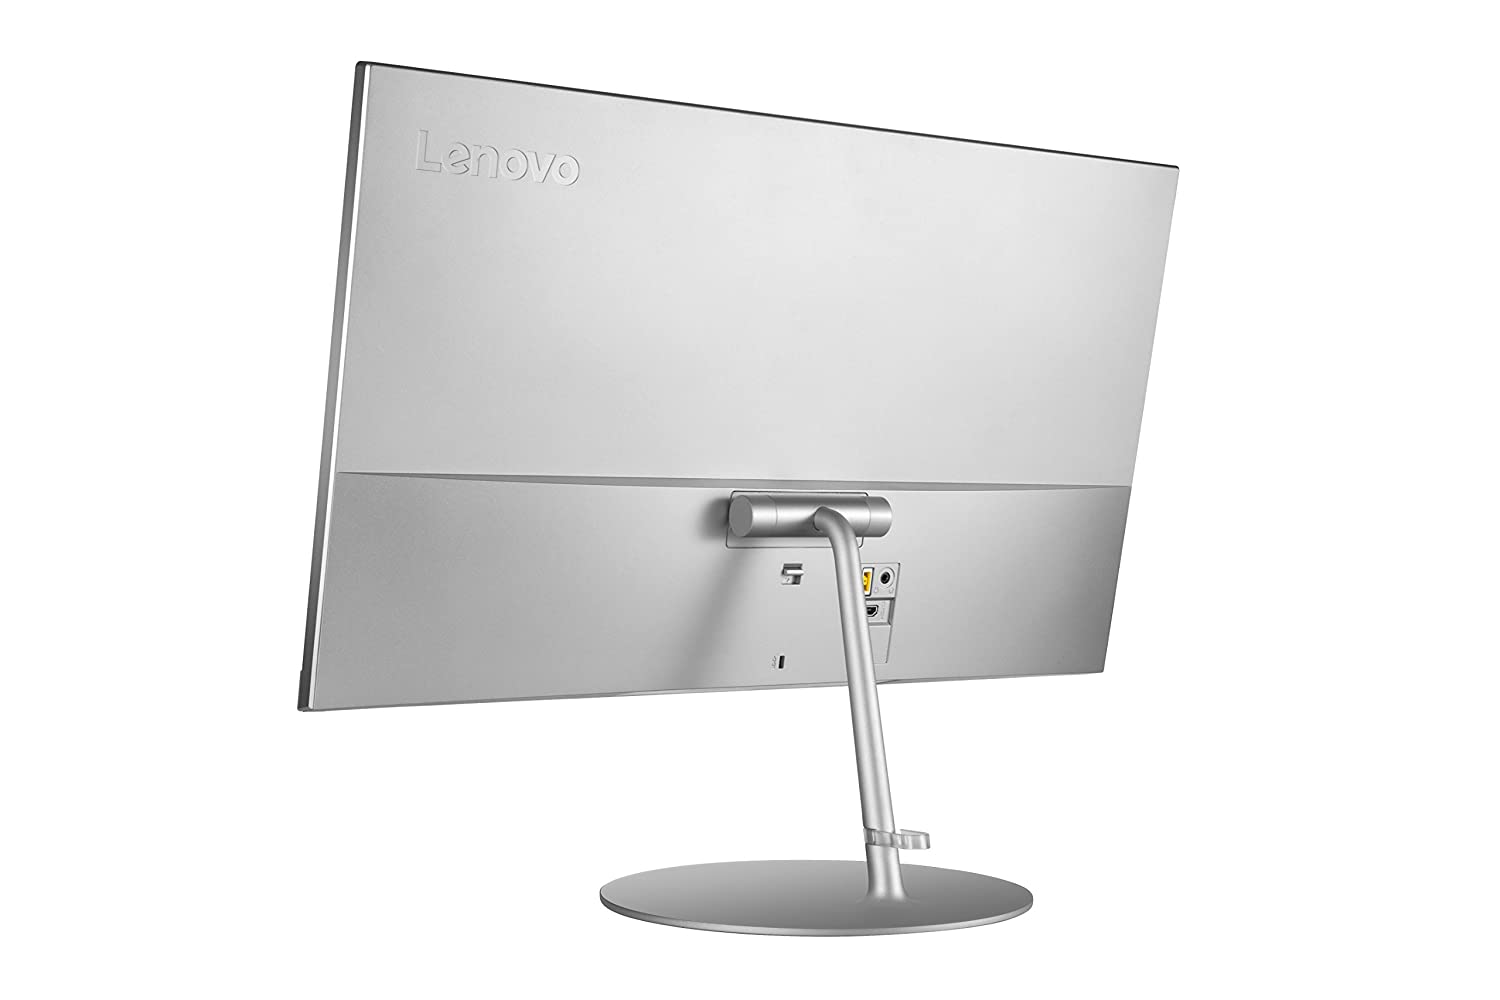 Lenovo Monitor, L24q 23 8-Inch Monitor, QHD Resolution, 16:9 Widescreen,  65D2GCC3US